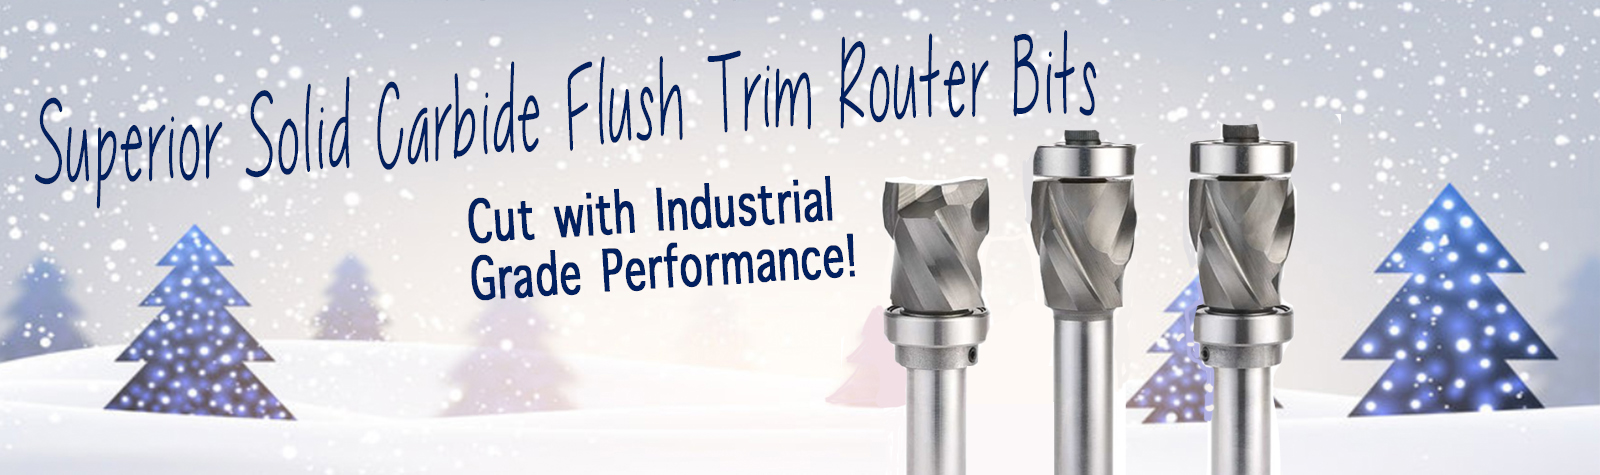 Superior Solid Carbide Flush Trim Router Bits